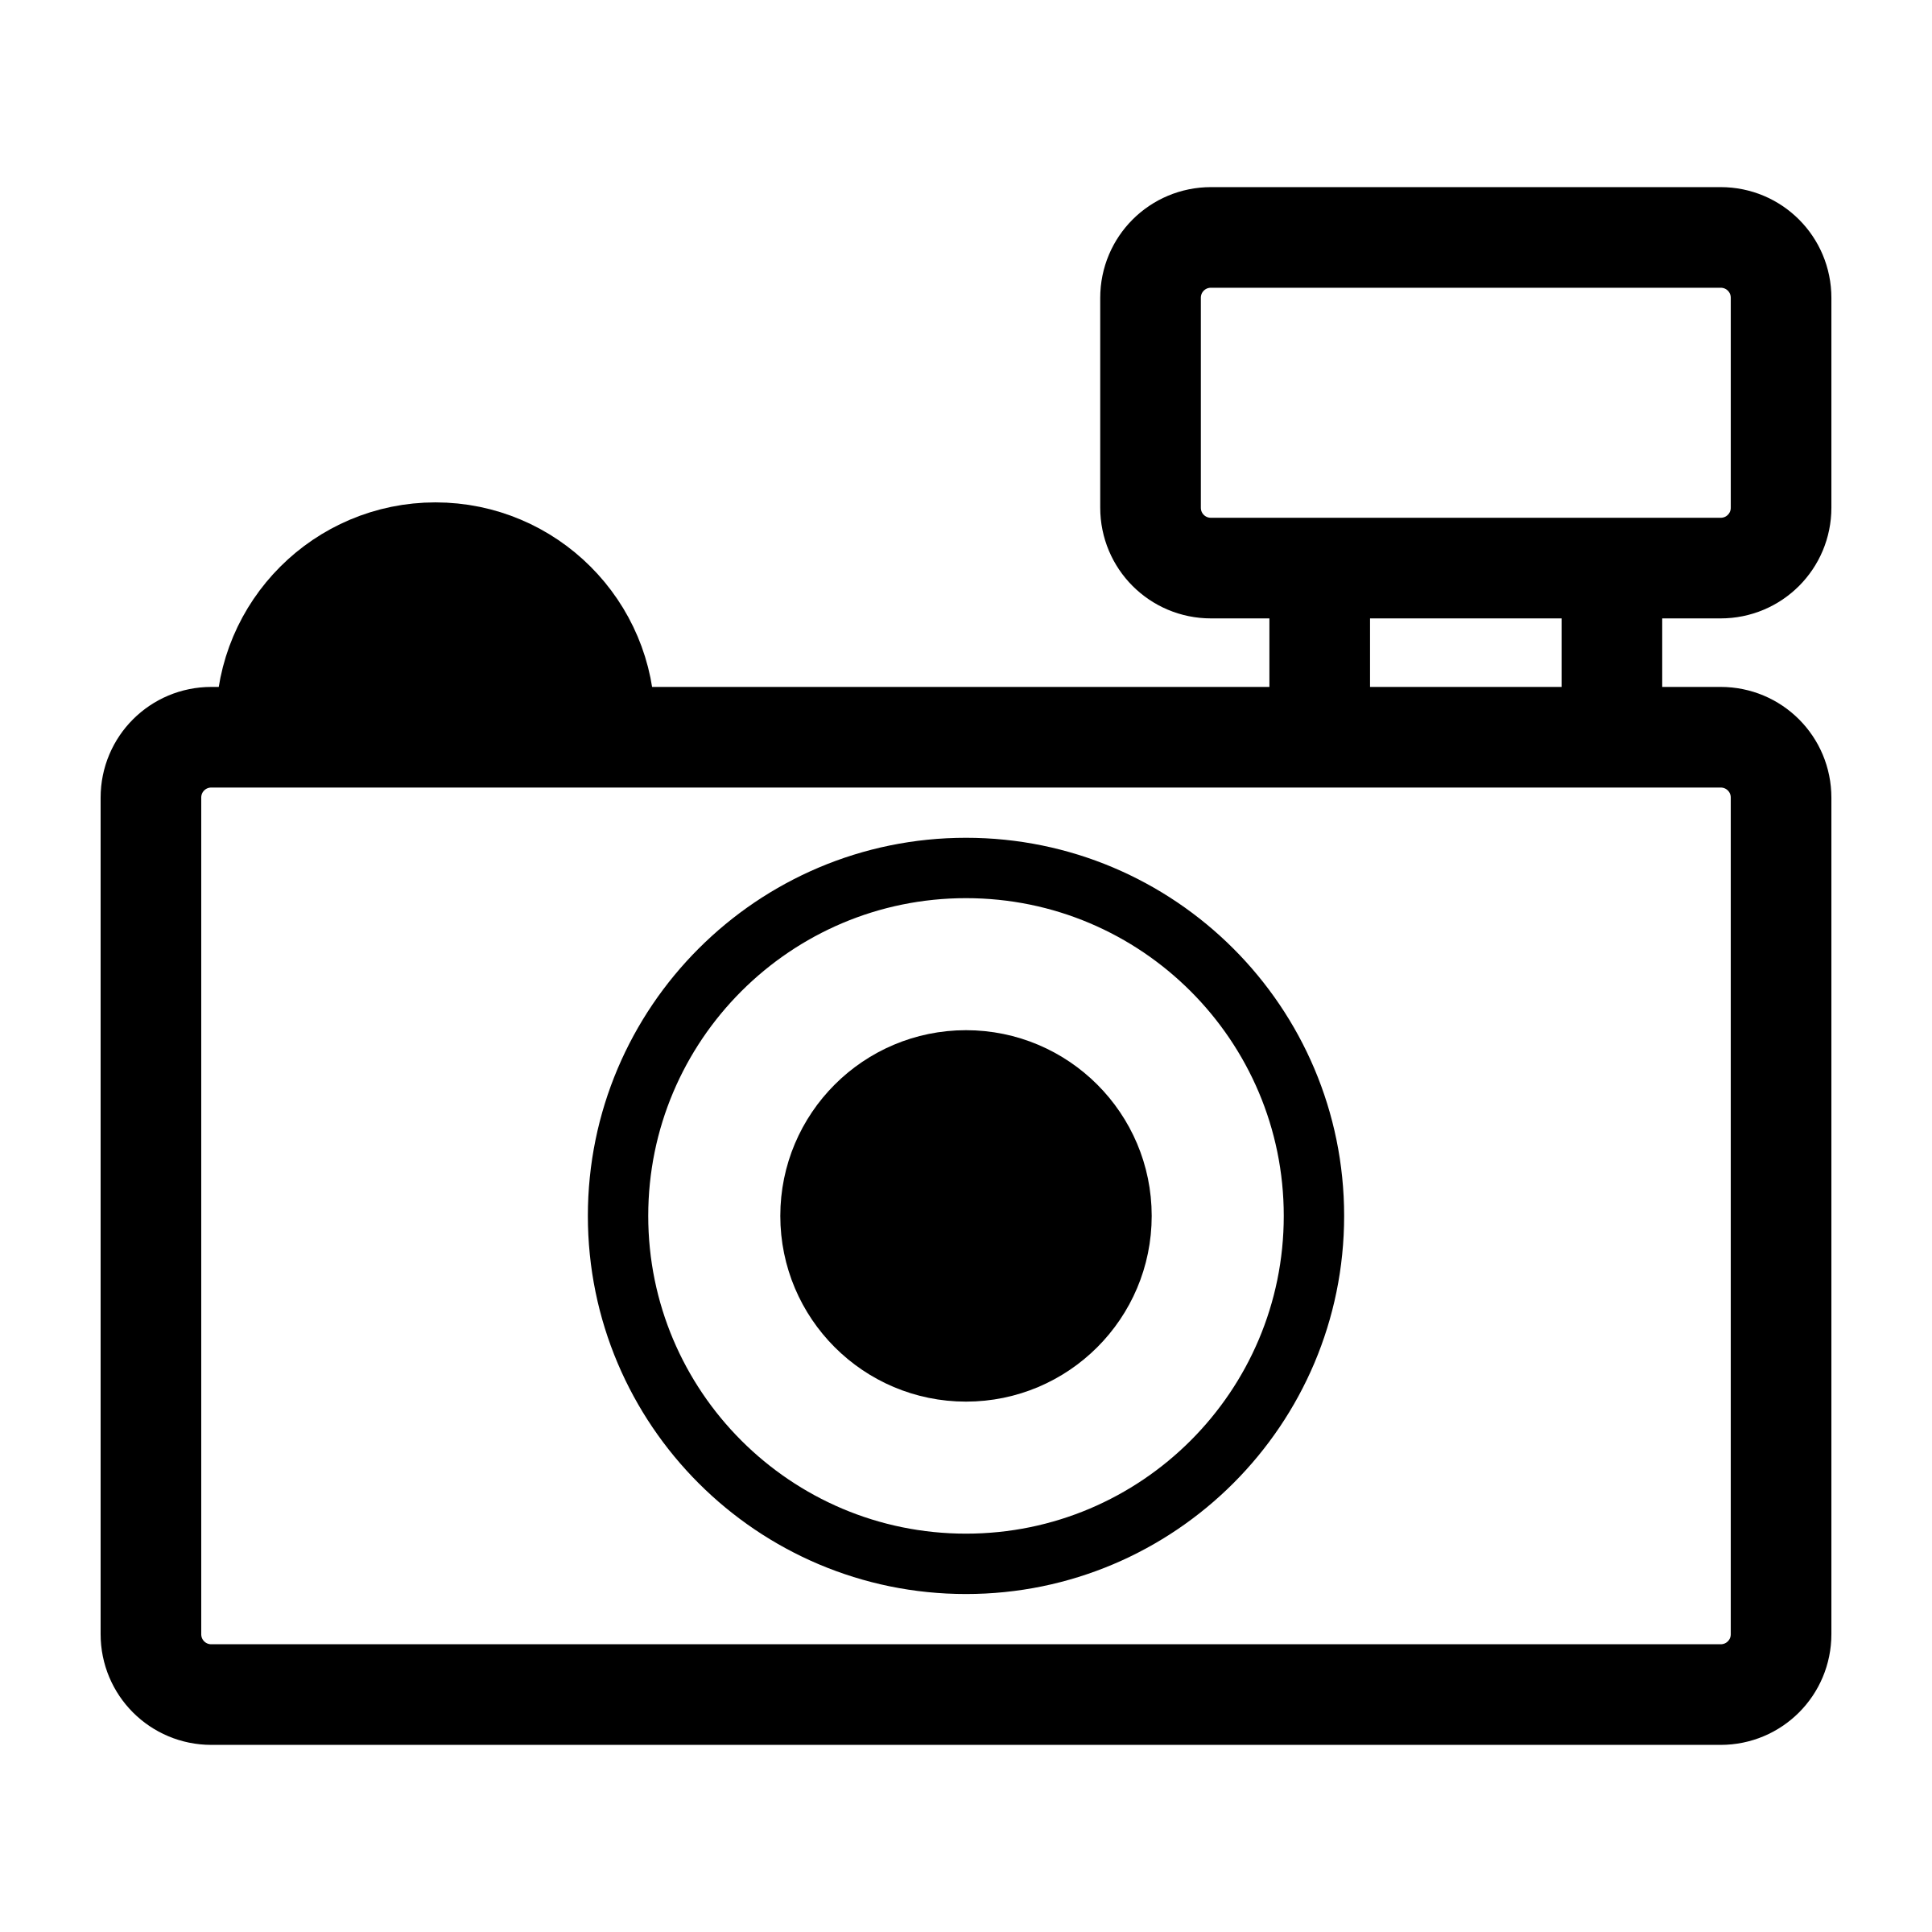 Old Camera Clipart Free Clip Art Image I-Old camera clipart free clip art image image-14